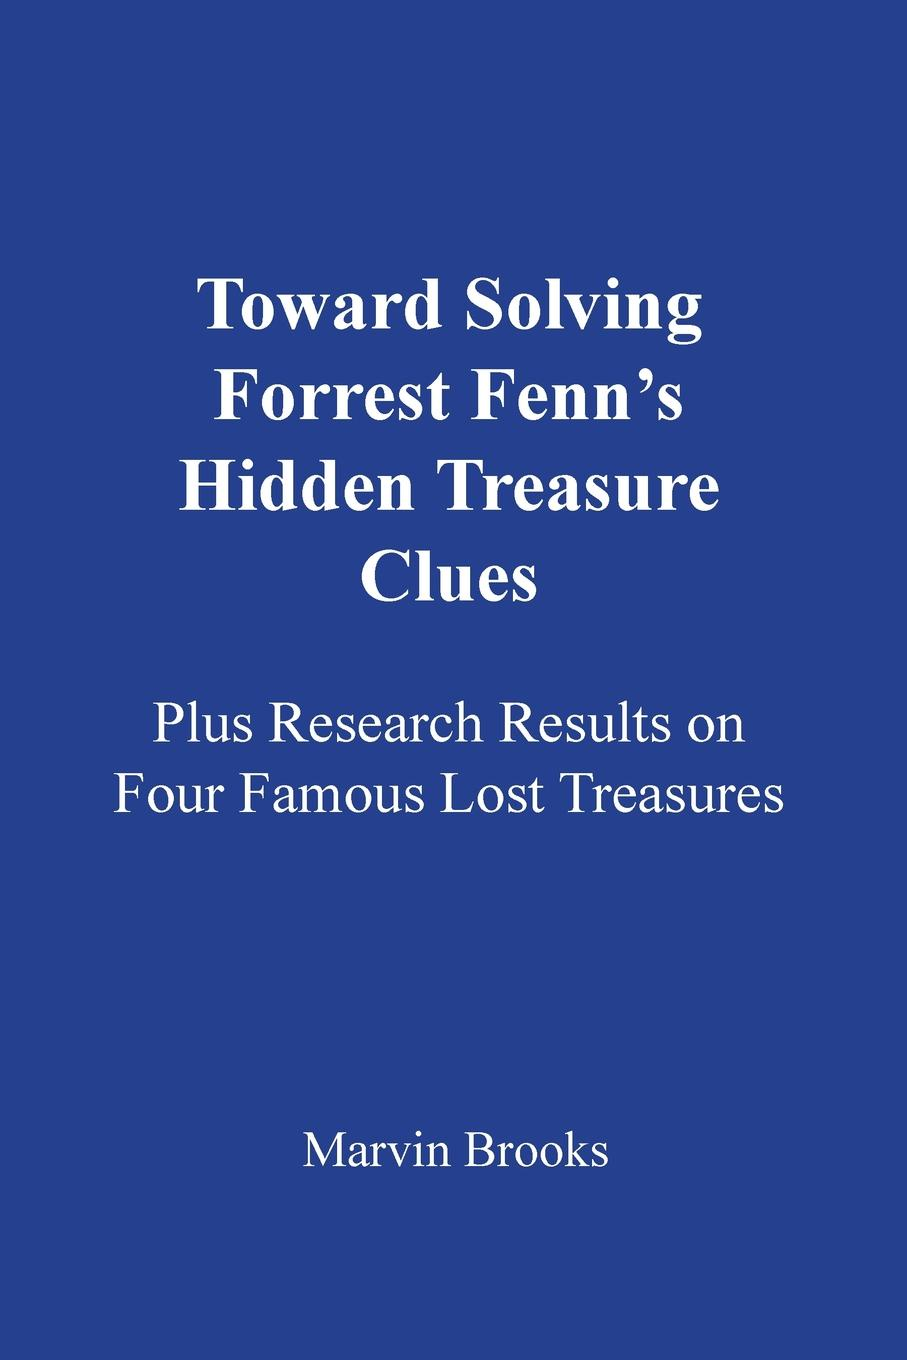 Marvin Brooks Toward Solving Forrest Fenn's Hidden Treasure Clues Plus Research Results on Four Famous Lost Treasures